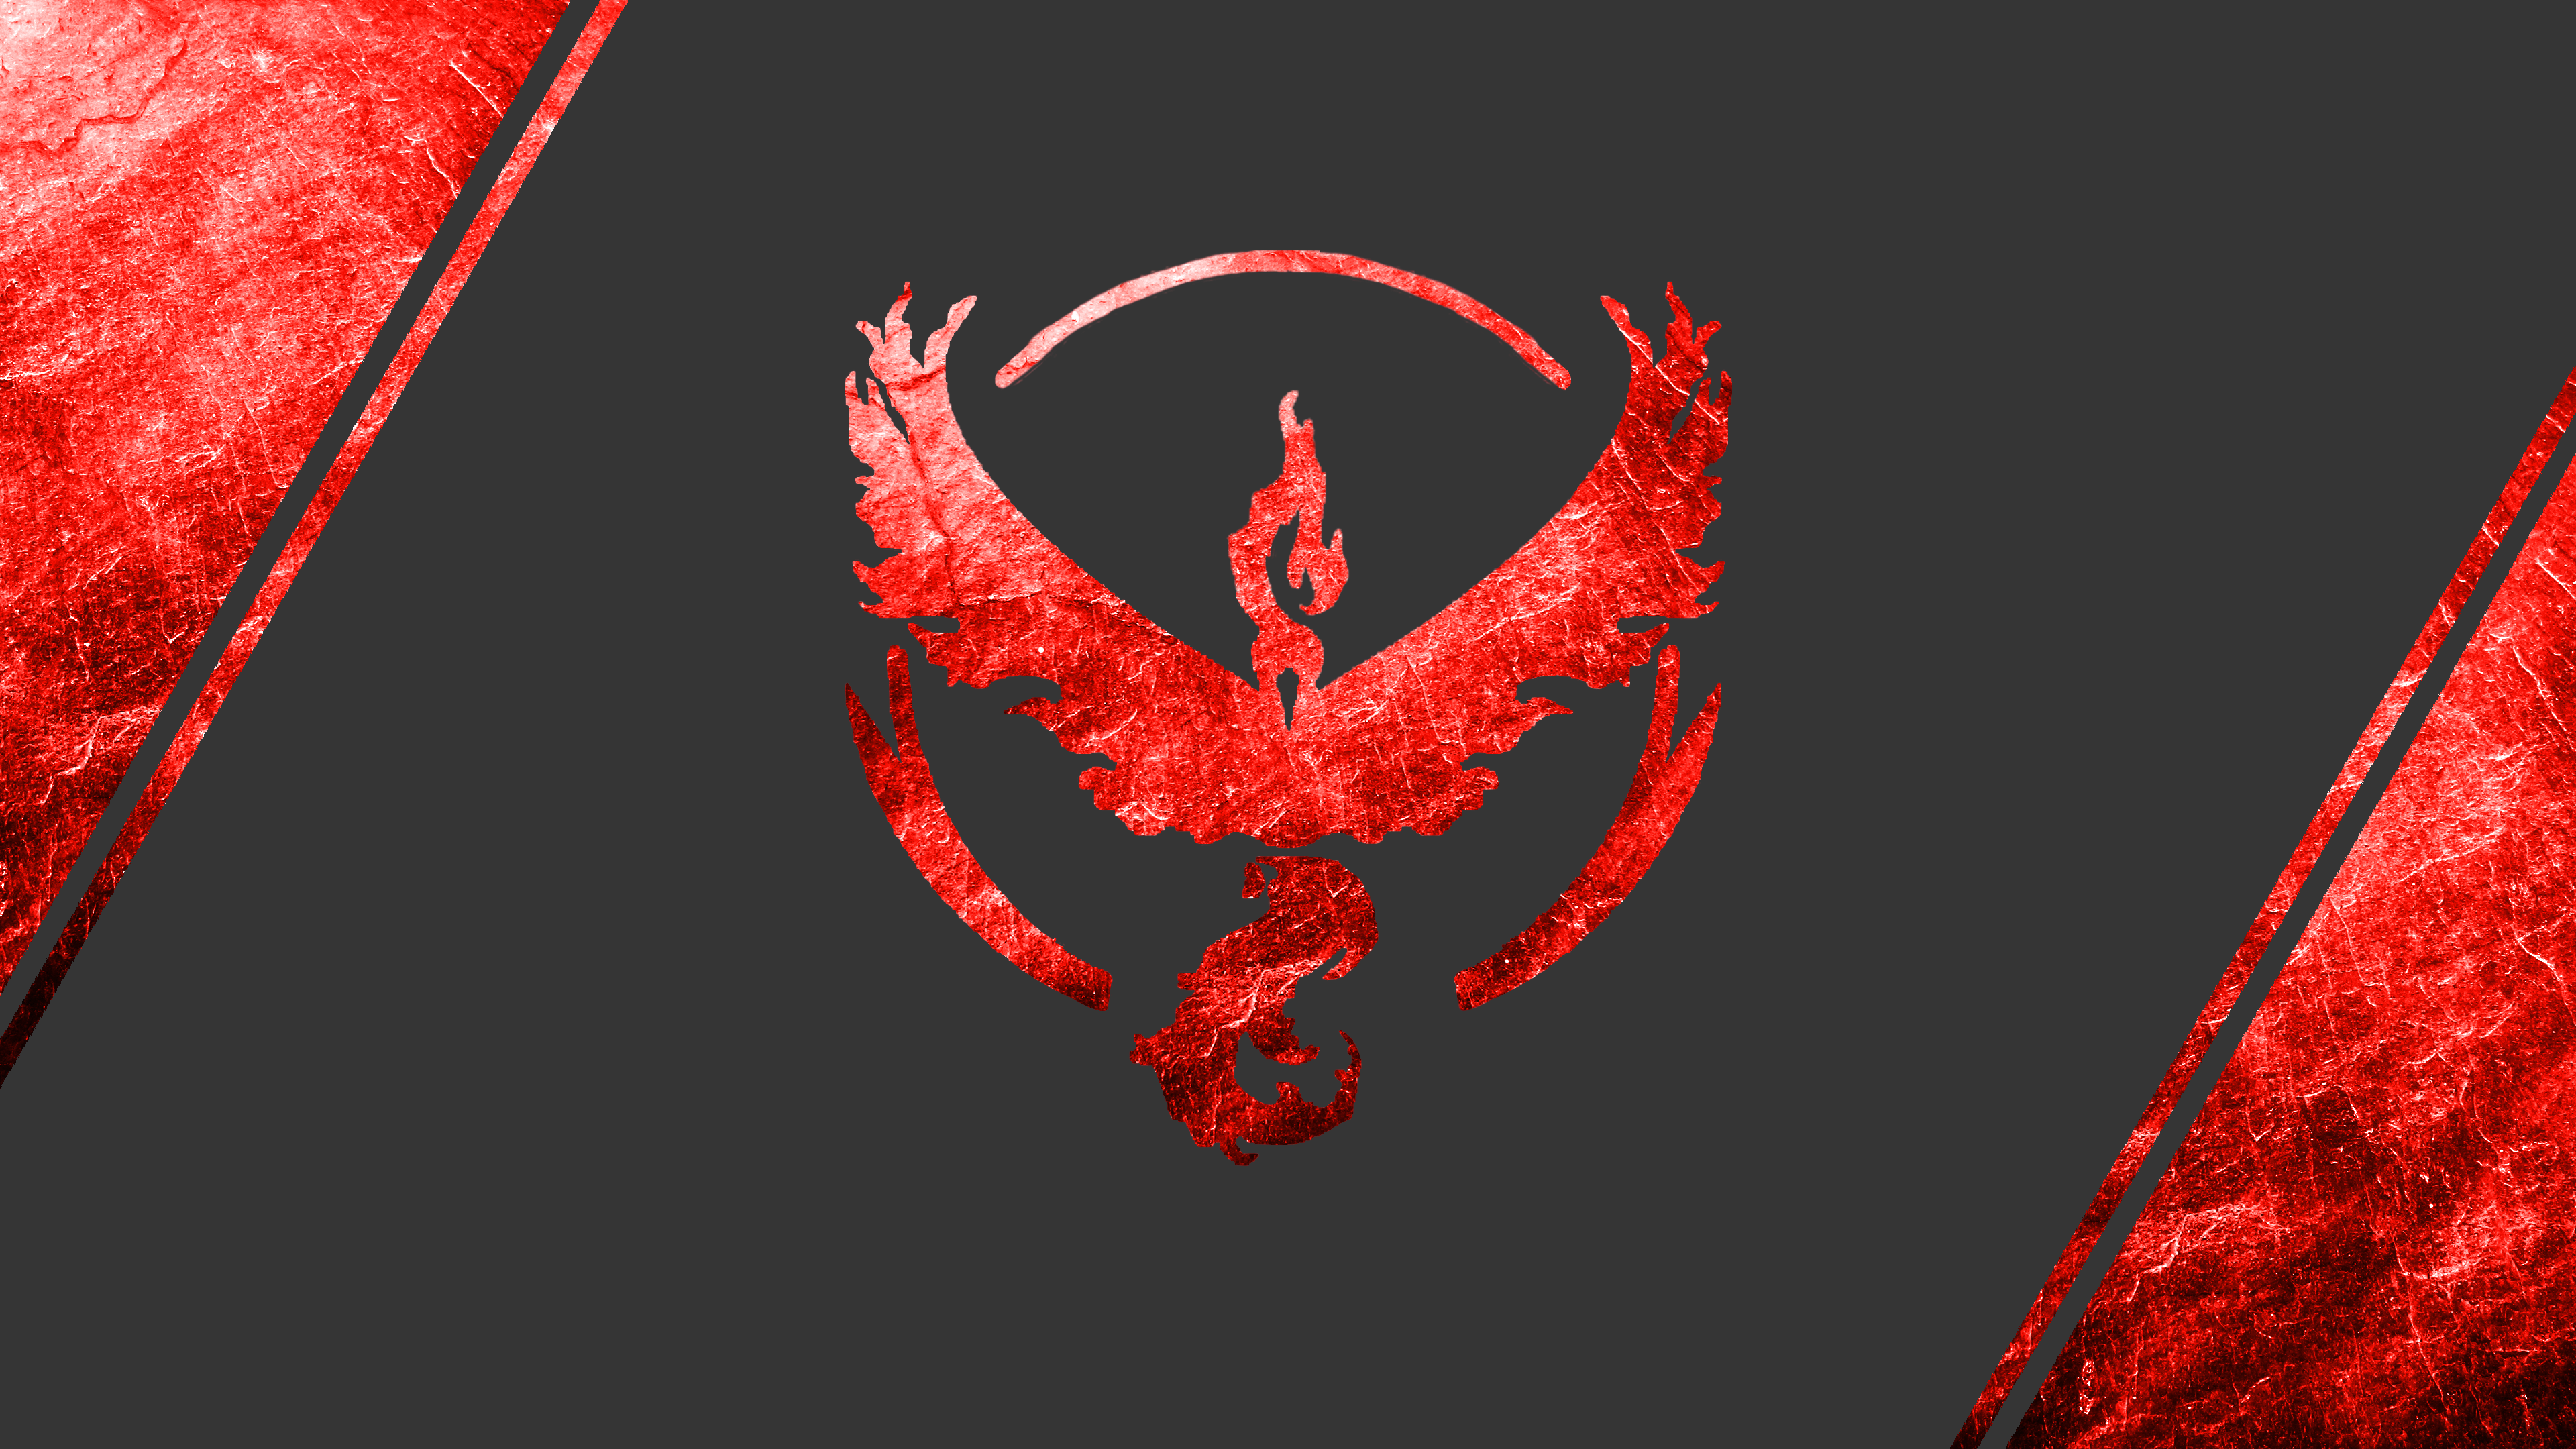 team valor pokemon go moltres texture background 4k wallpapers hd ultra preview pokemon